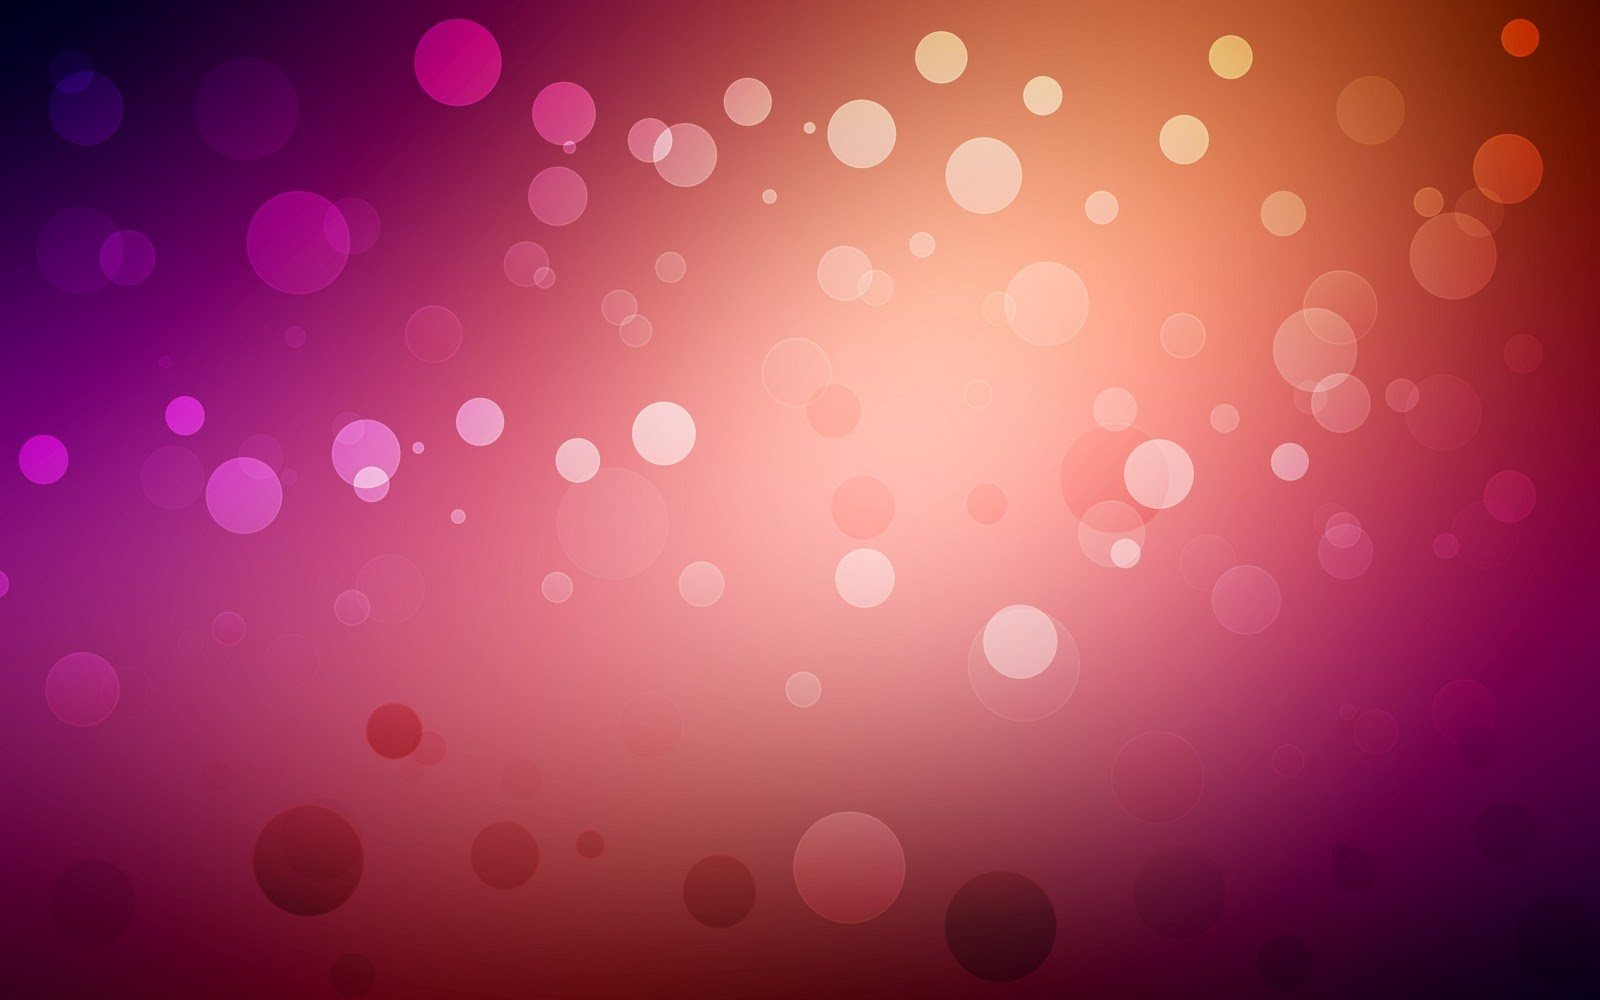 pink wallpaper bestwallpaperhd 1600x1000